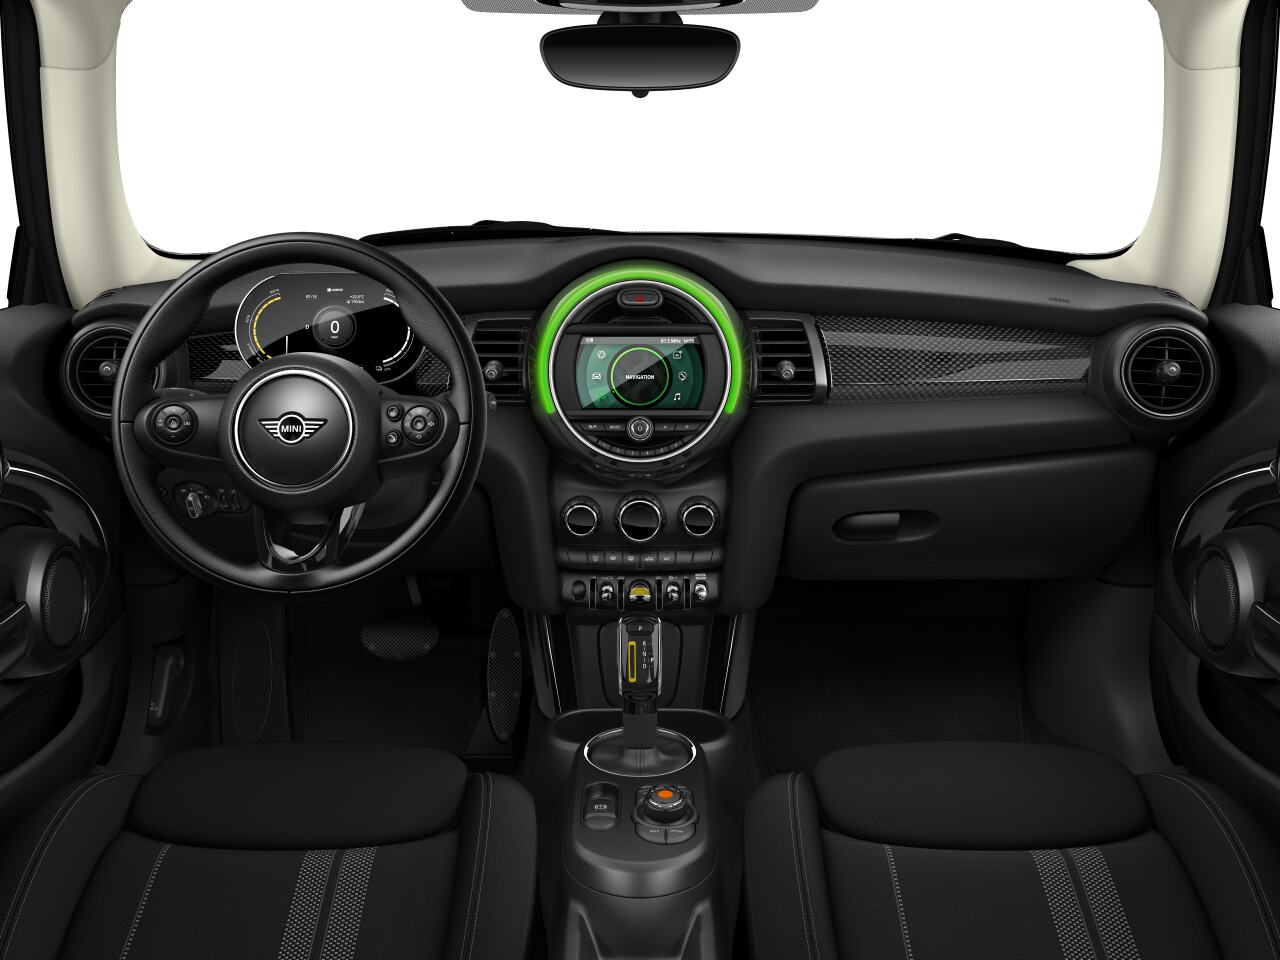 Mini electric – Package S – interior view - dashboard